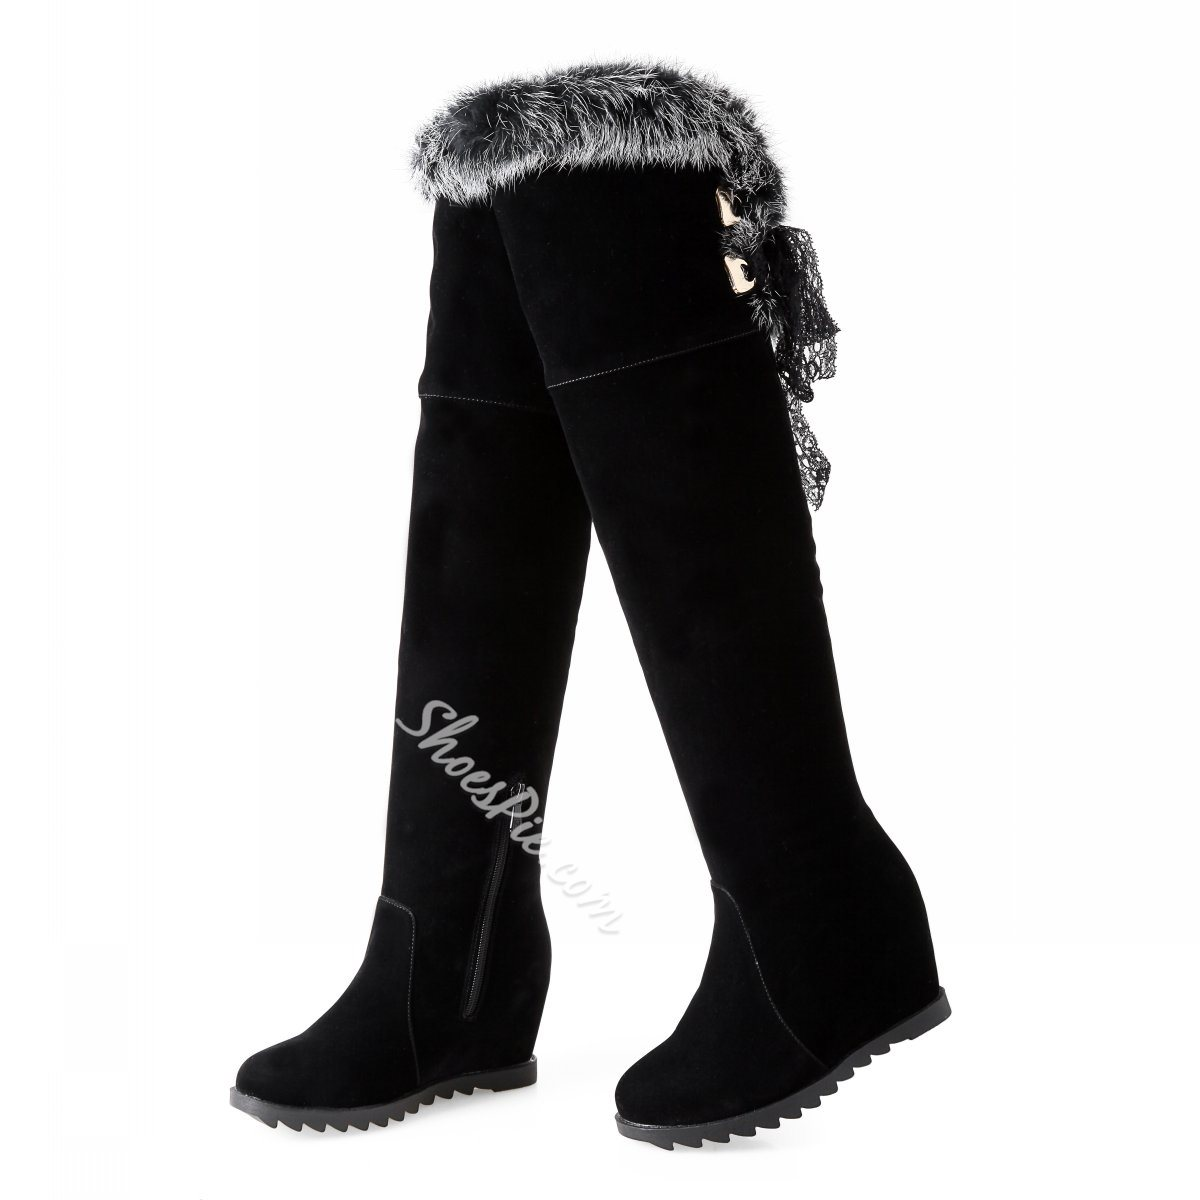 Shoespie Wedge Heel Knee High Snow Boots